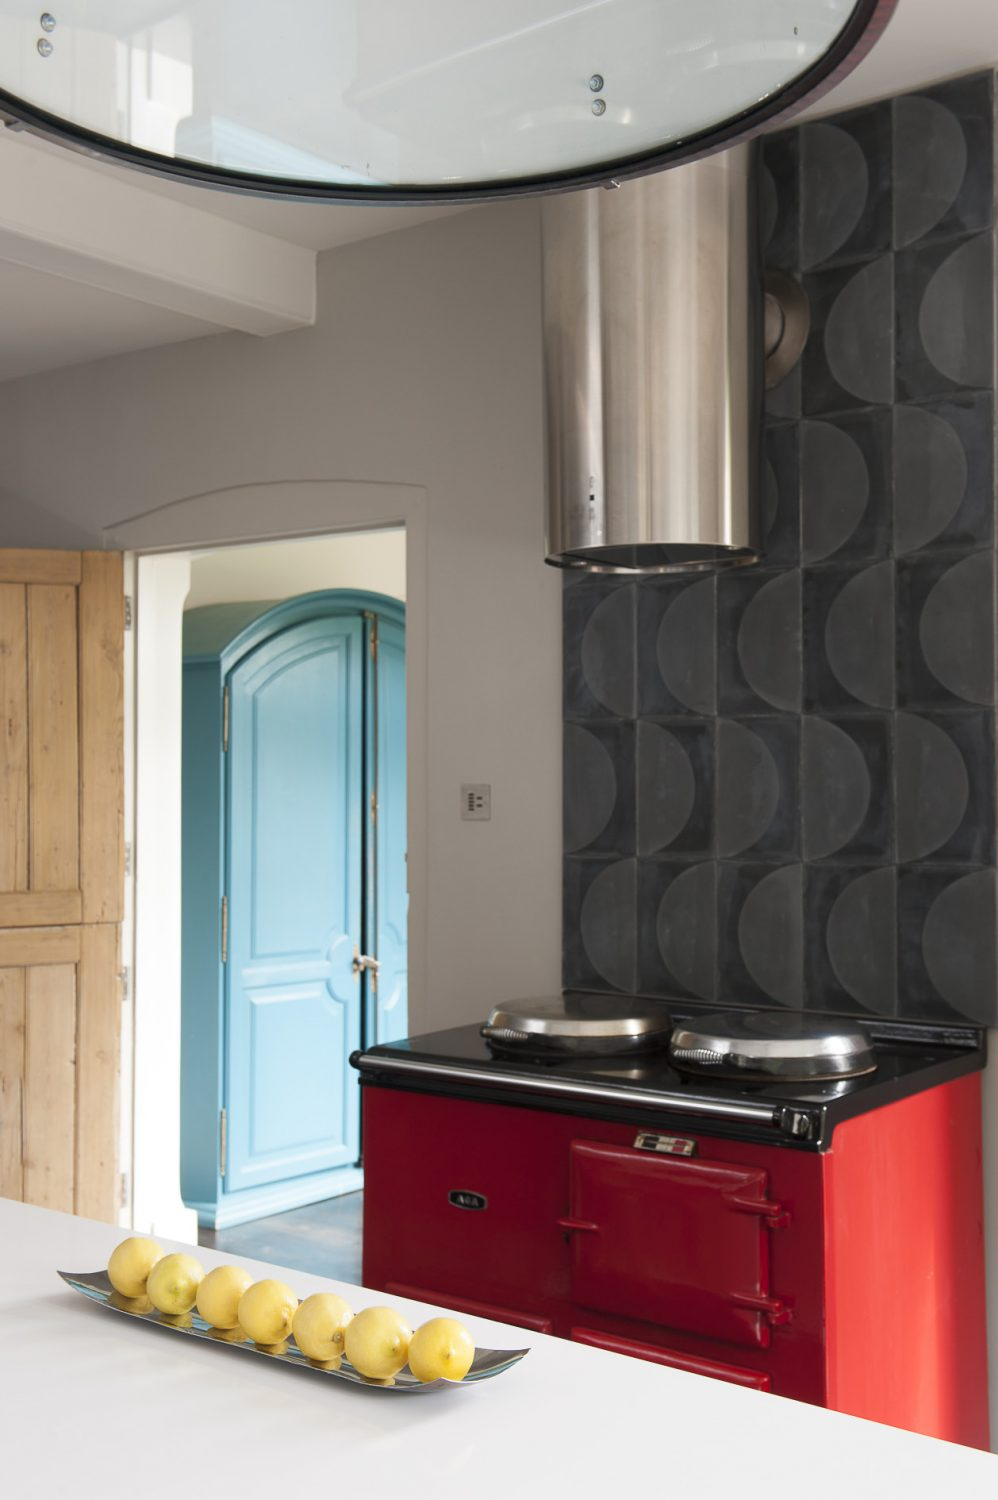 Although Jane's scheme was designed around a cool white central island with a gas hob, she didn't want to lose the familiar warmth of the 1970s family Aga, which now adds a bold red accent to the ultra contemporary industrial mood of the kitchen